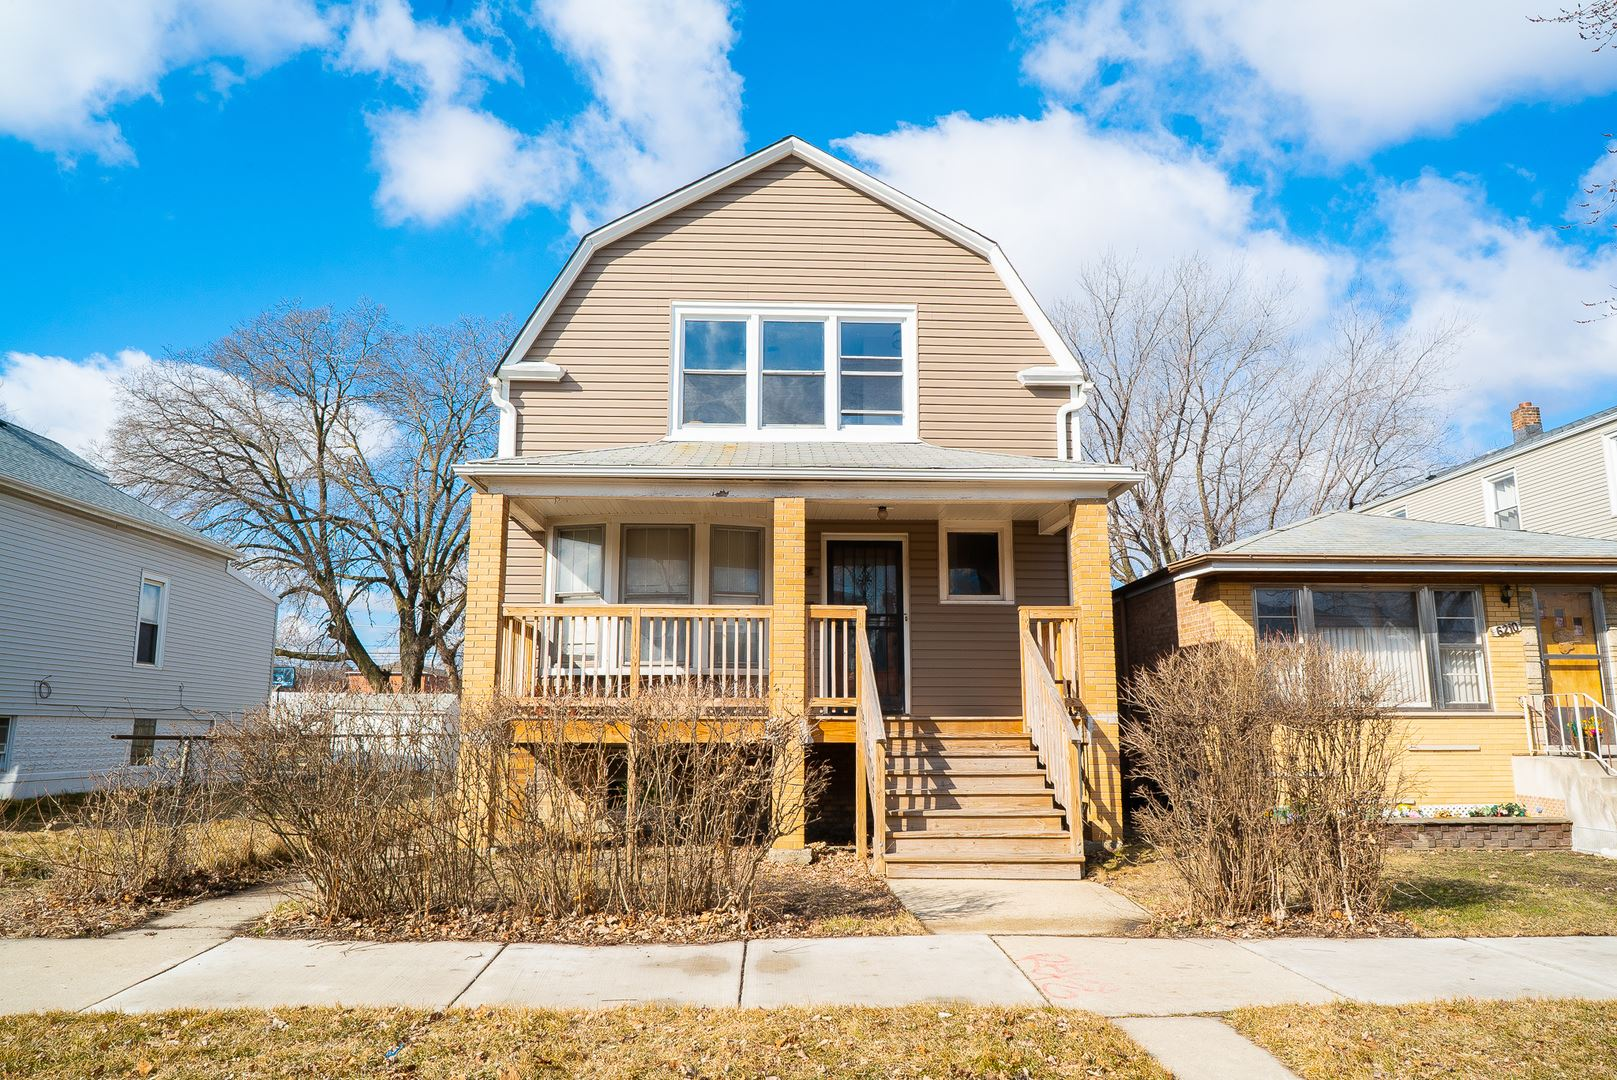 6212 S Kolmar Avenue, Chicago, IL 60629 - #: 10657438